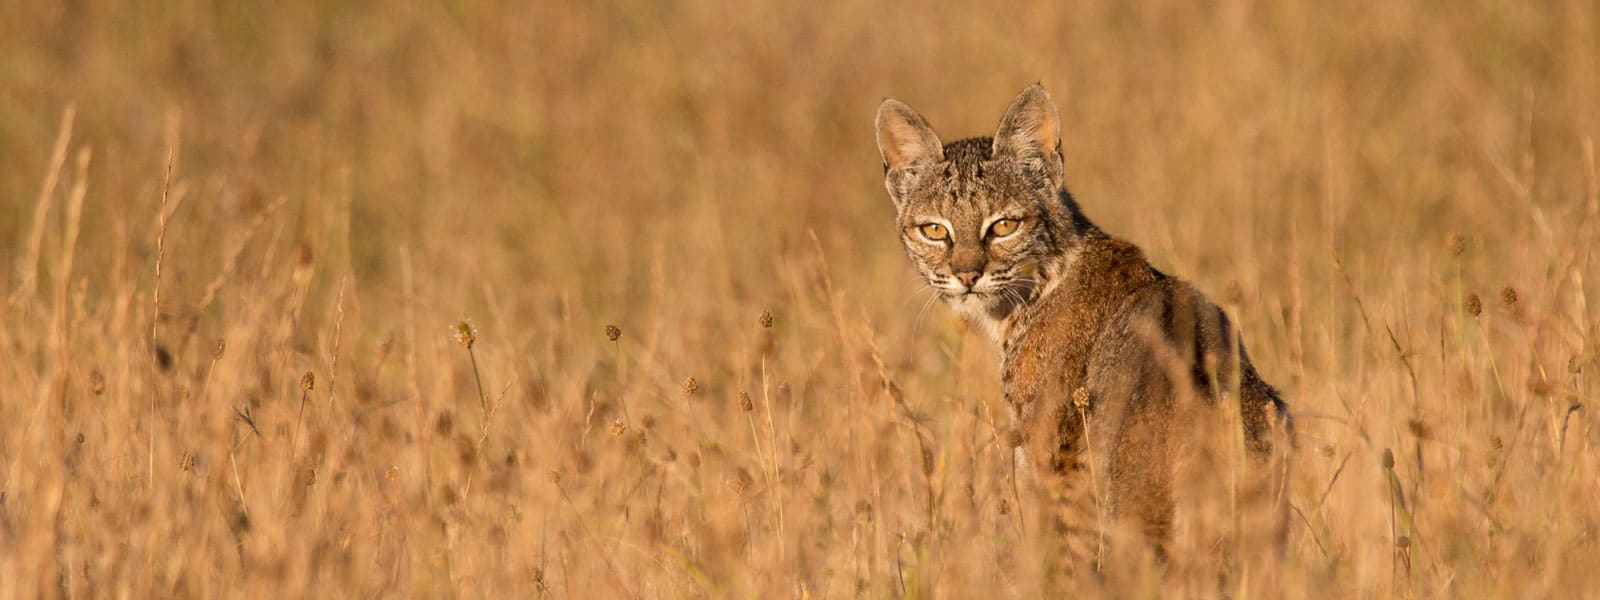 Bobcat in grass. Photo by Tory Kallman